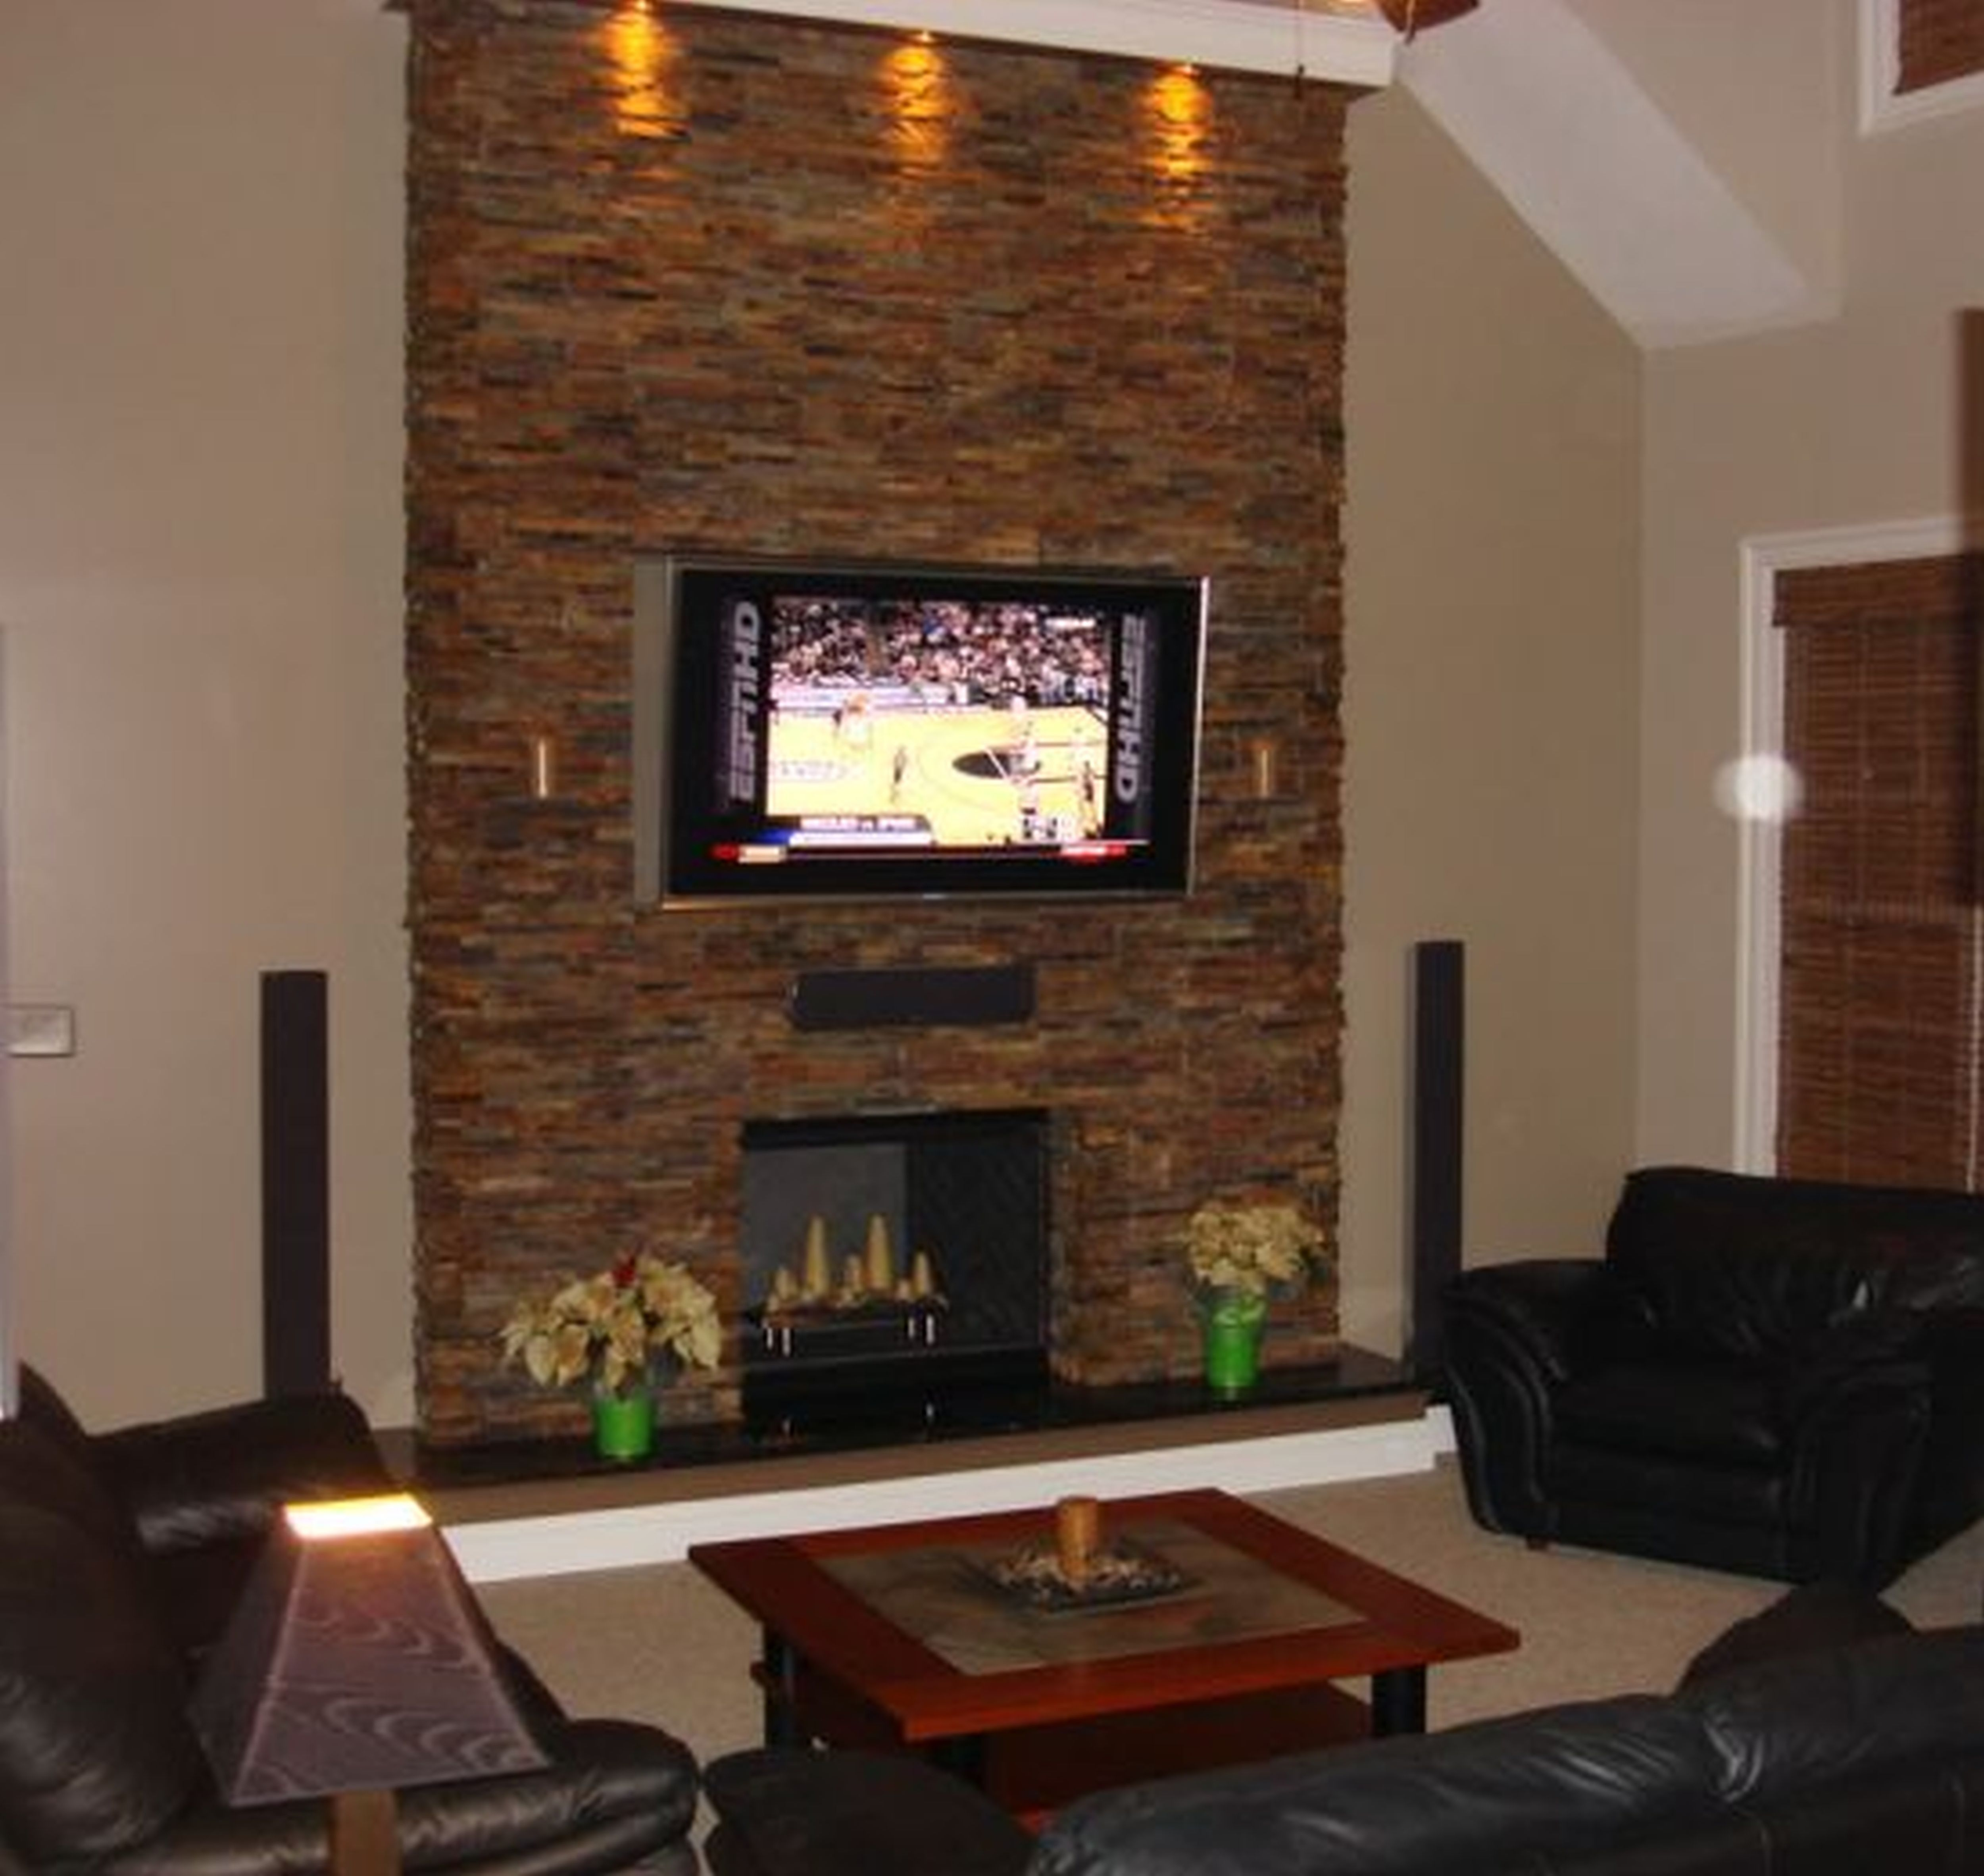 fireplaces and inc builders dry envira hearth with corner stacked stone sienna stack gas fireplace raised harlow